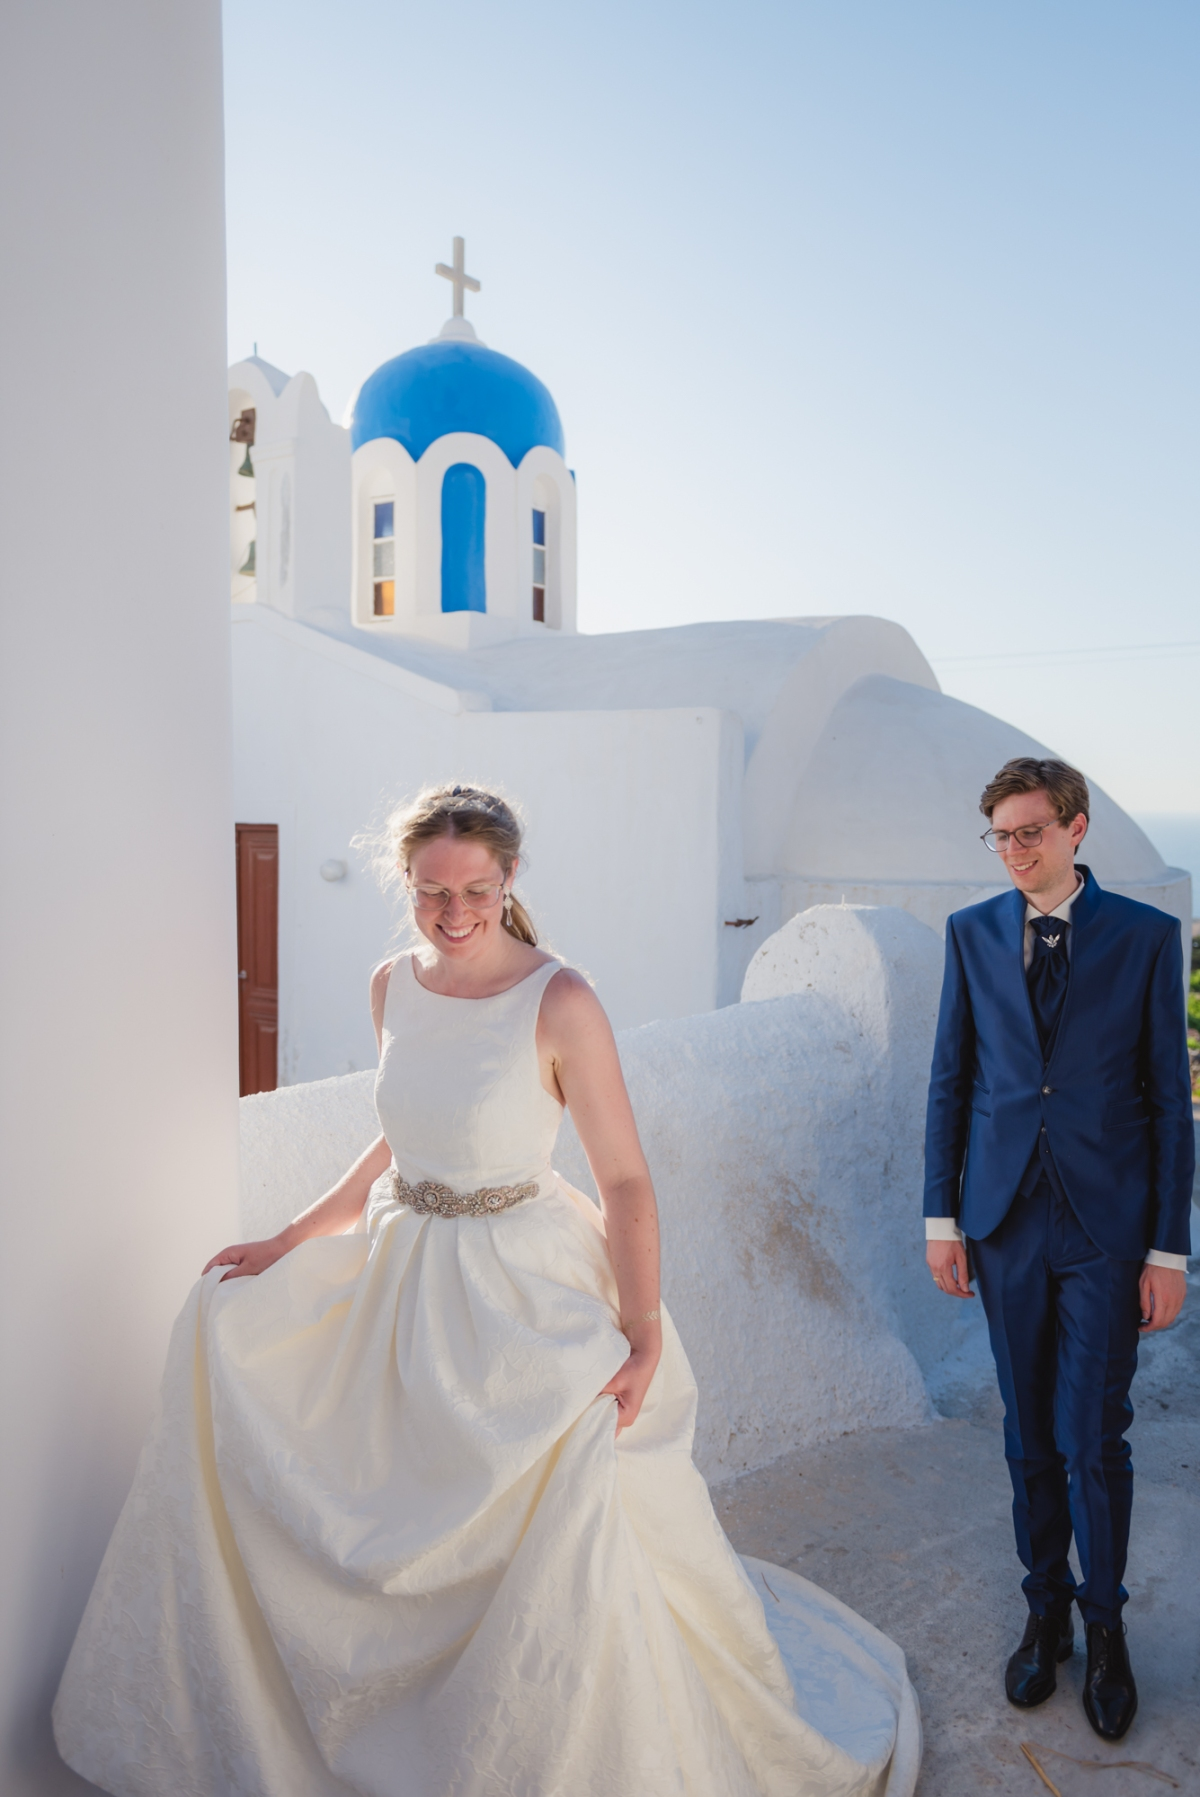 Santorini-post-wedding-shoot-on-the-greek-island-001